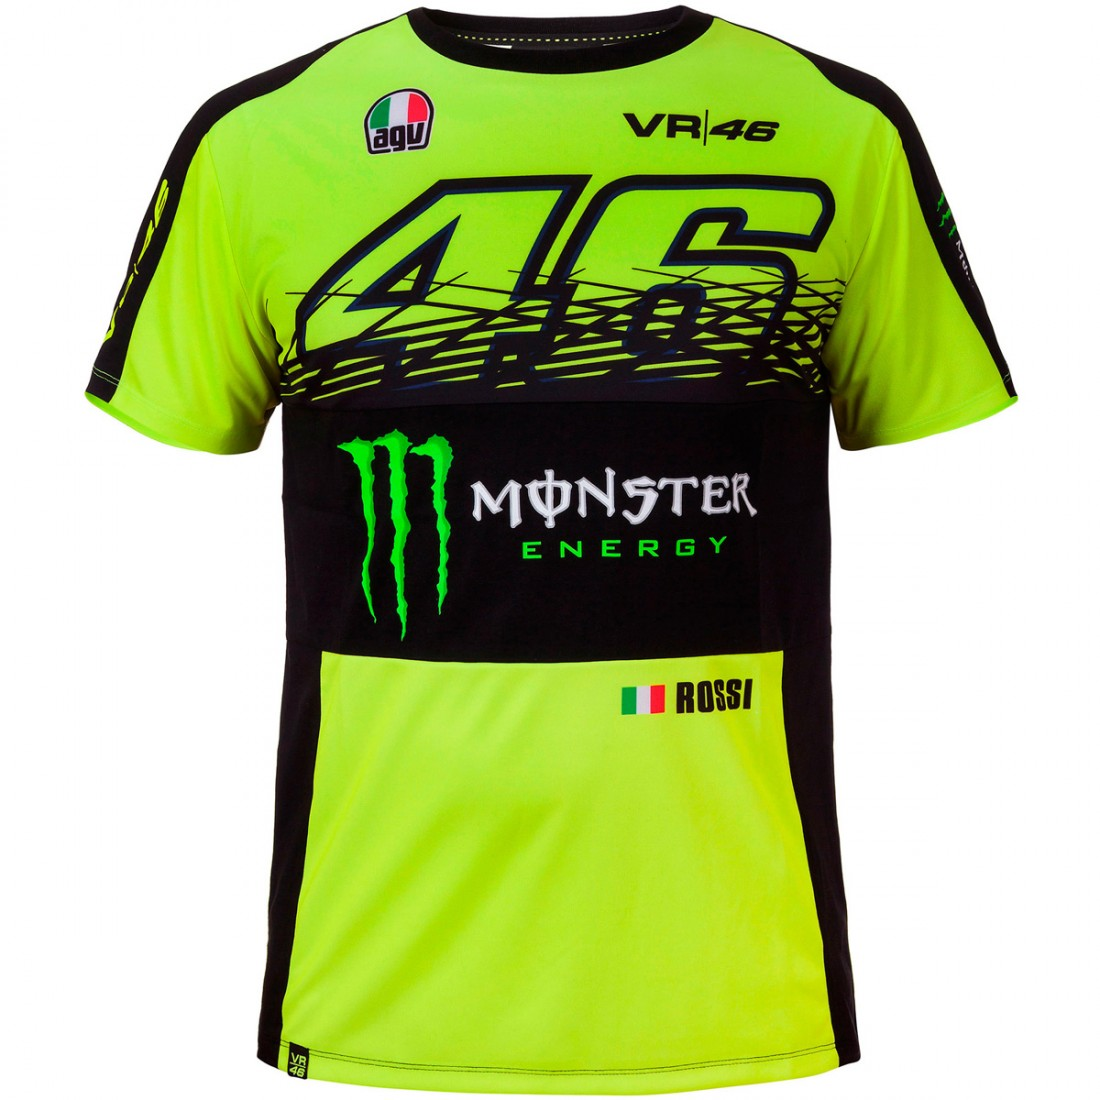 Monza Monster Vr46 Road Rossi 274428 46 Maillot Vr Off Omn8wvN0